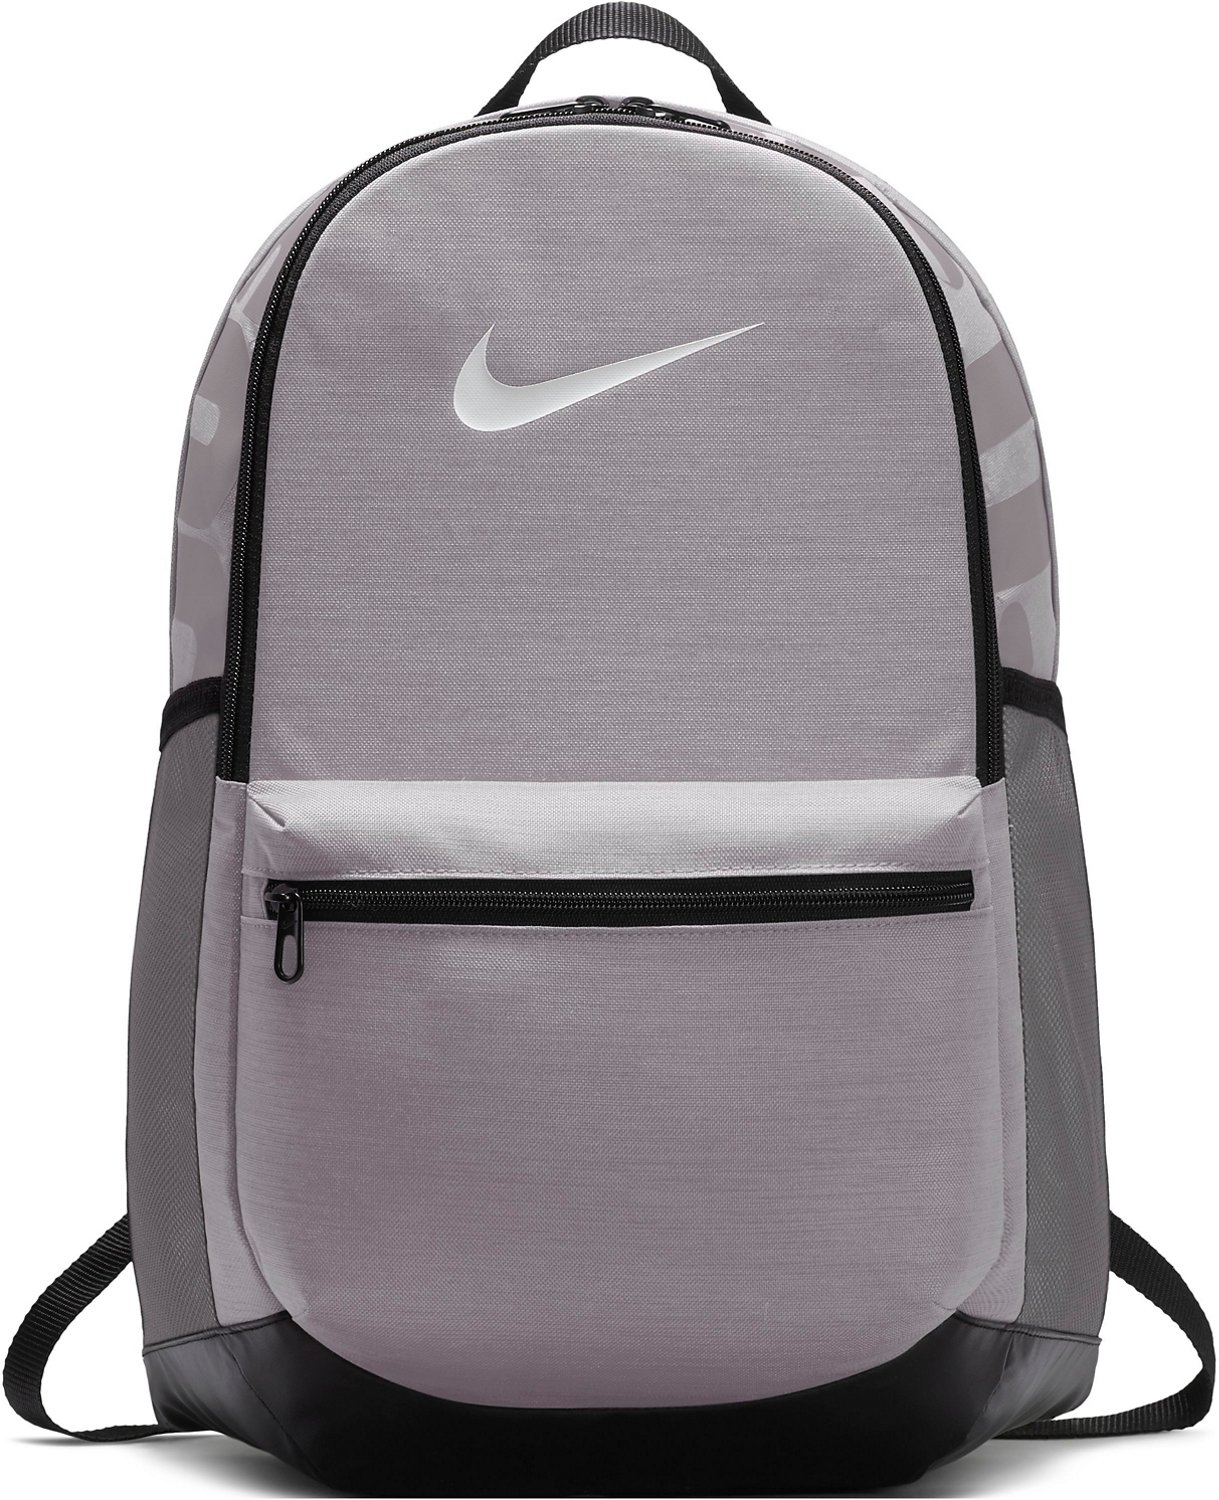 7b9cef1e6 Display product reviews for Nike Brasilia II Backpack